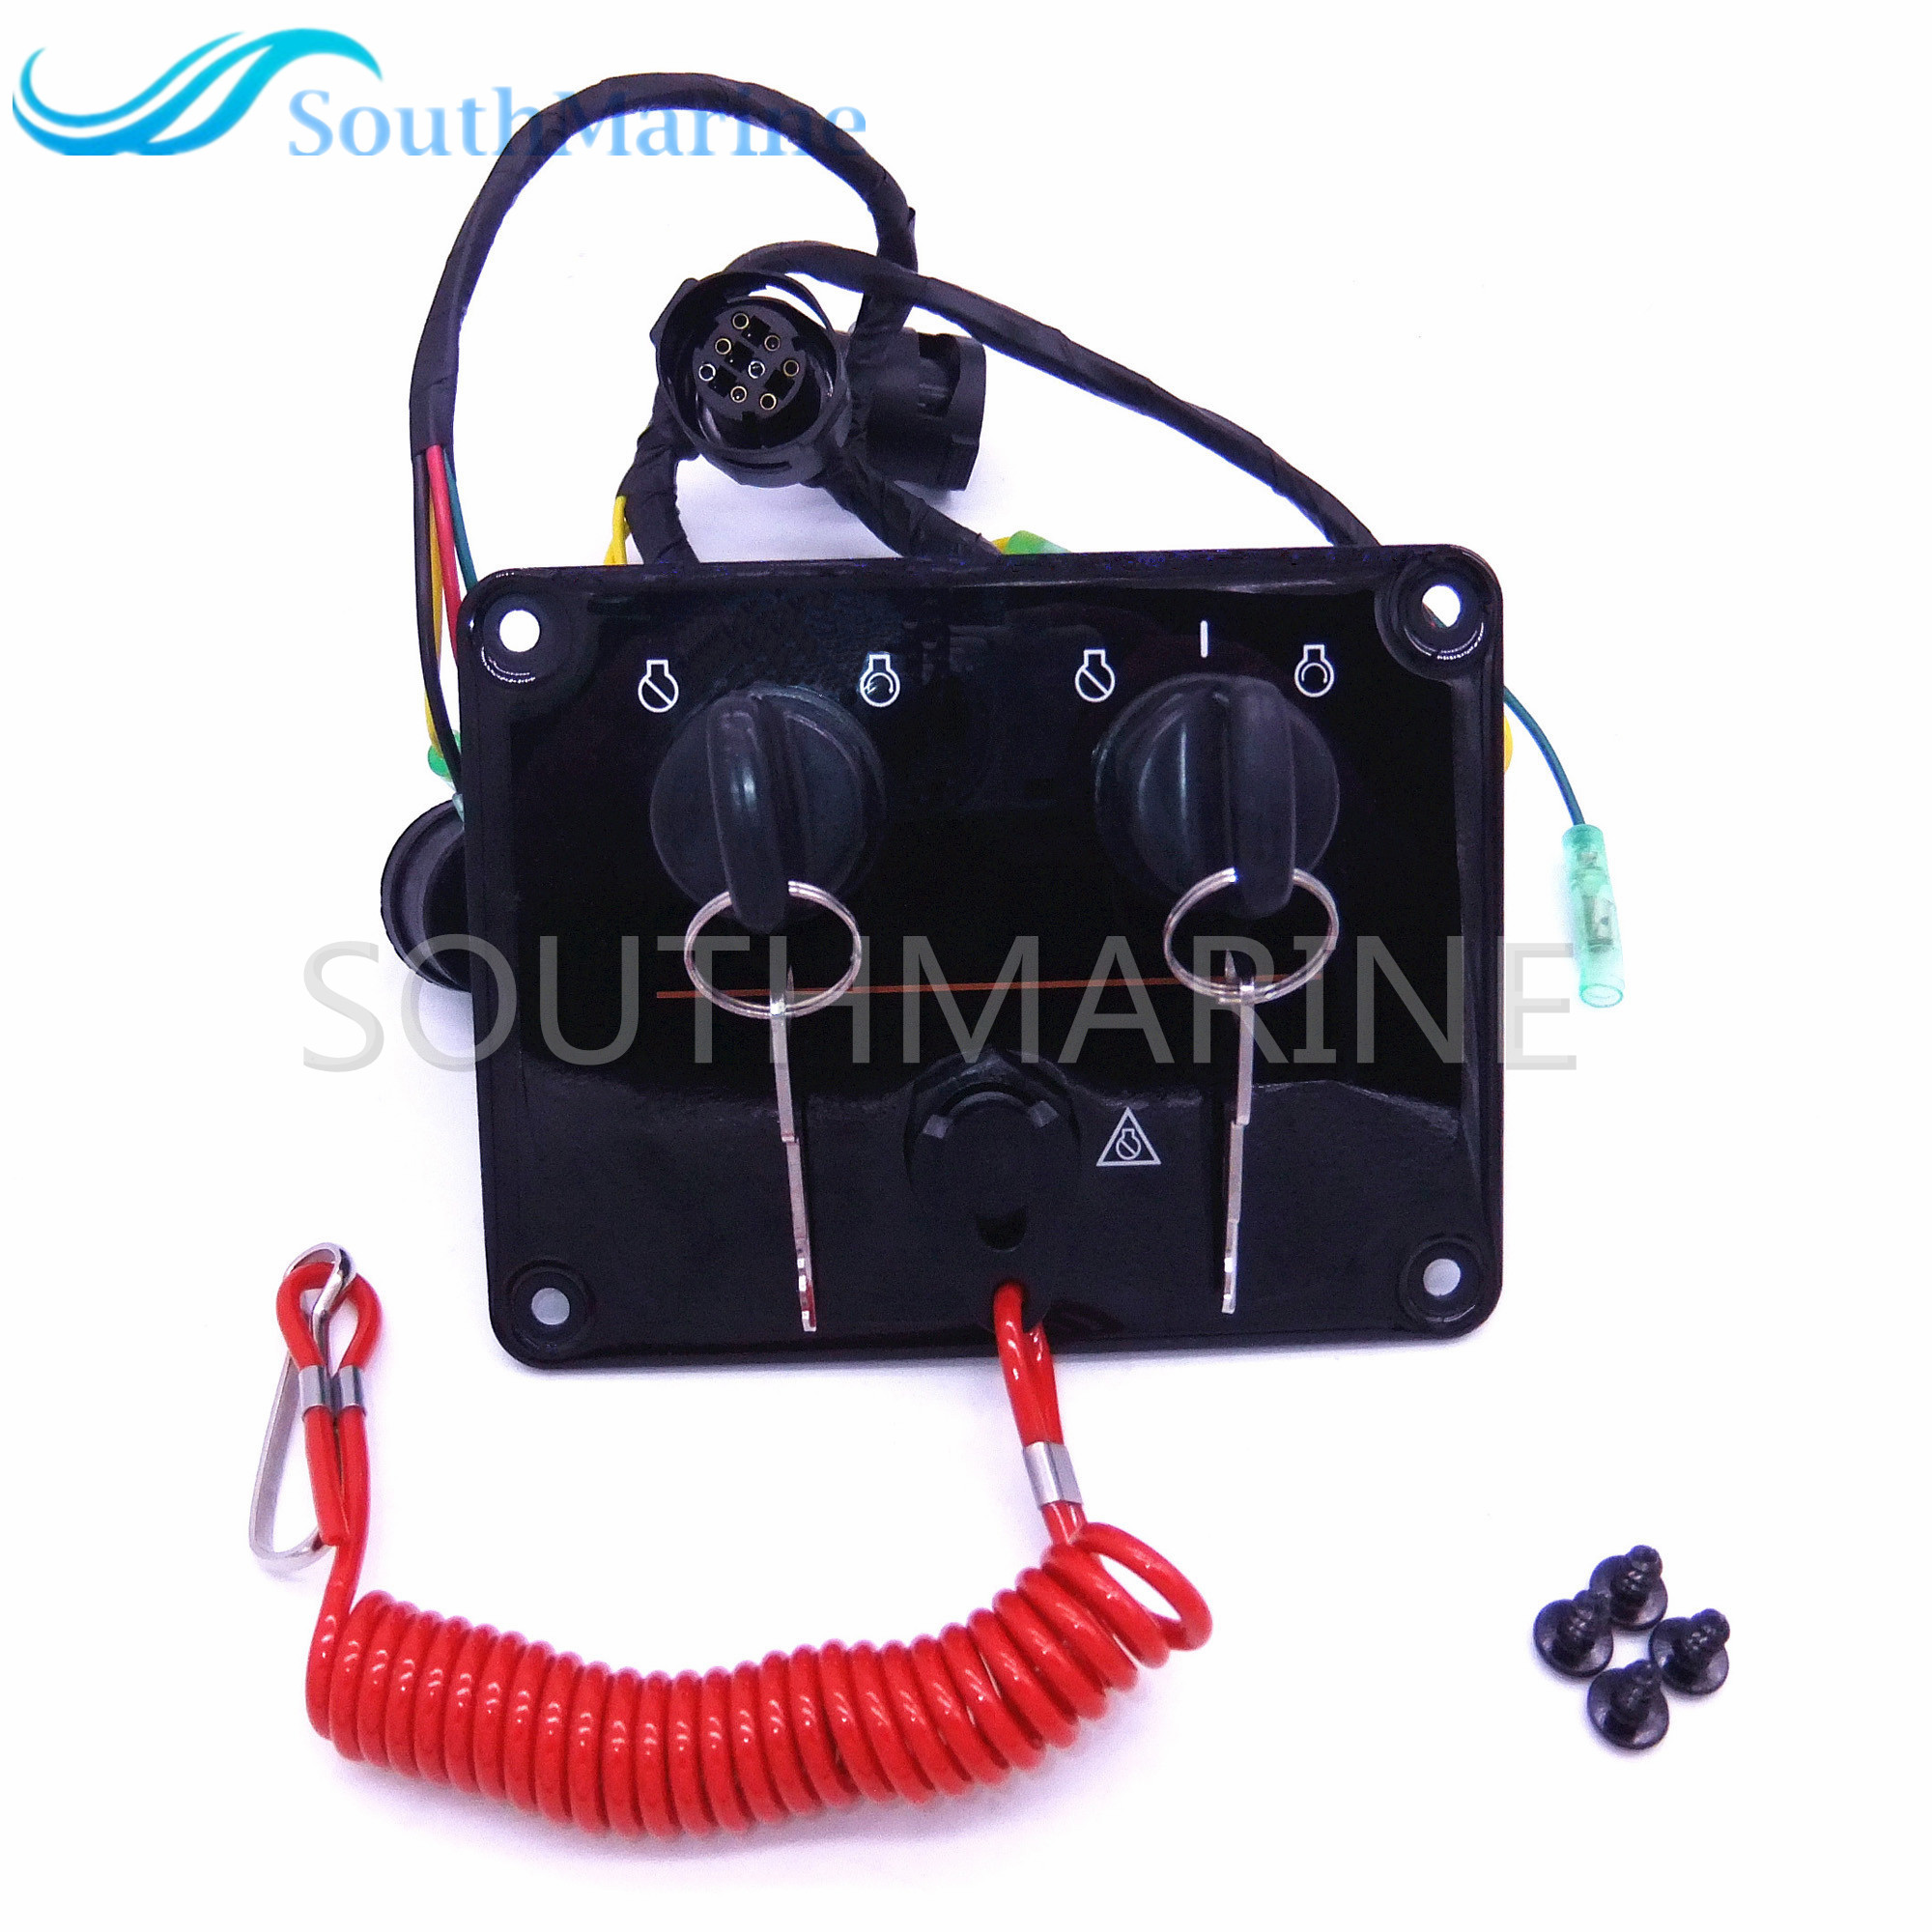 Boat motor 6K1-82570 6K1-82570-12-00 Outboard engine dual twin switch  panel main switch assembly for yamaha ,Free Shipping